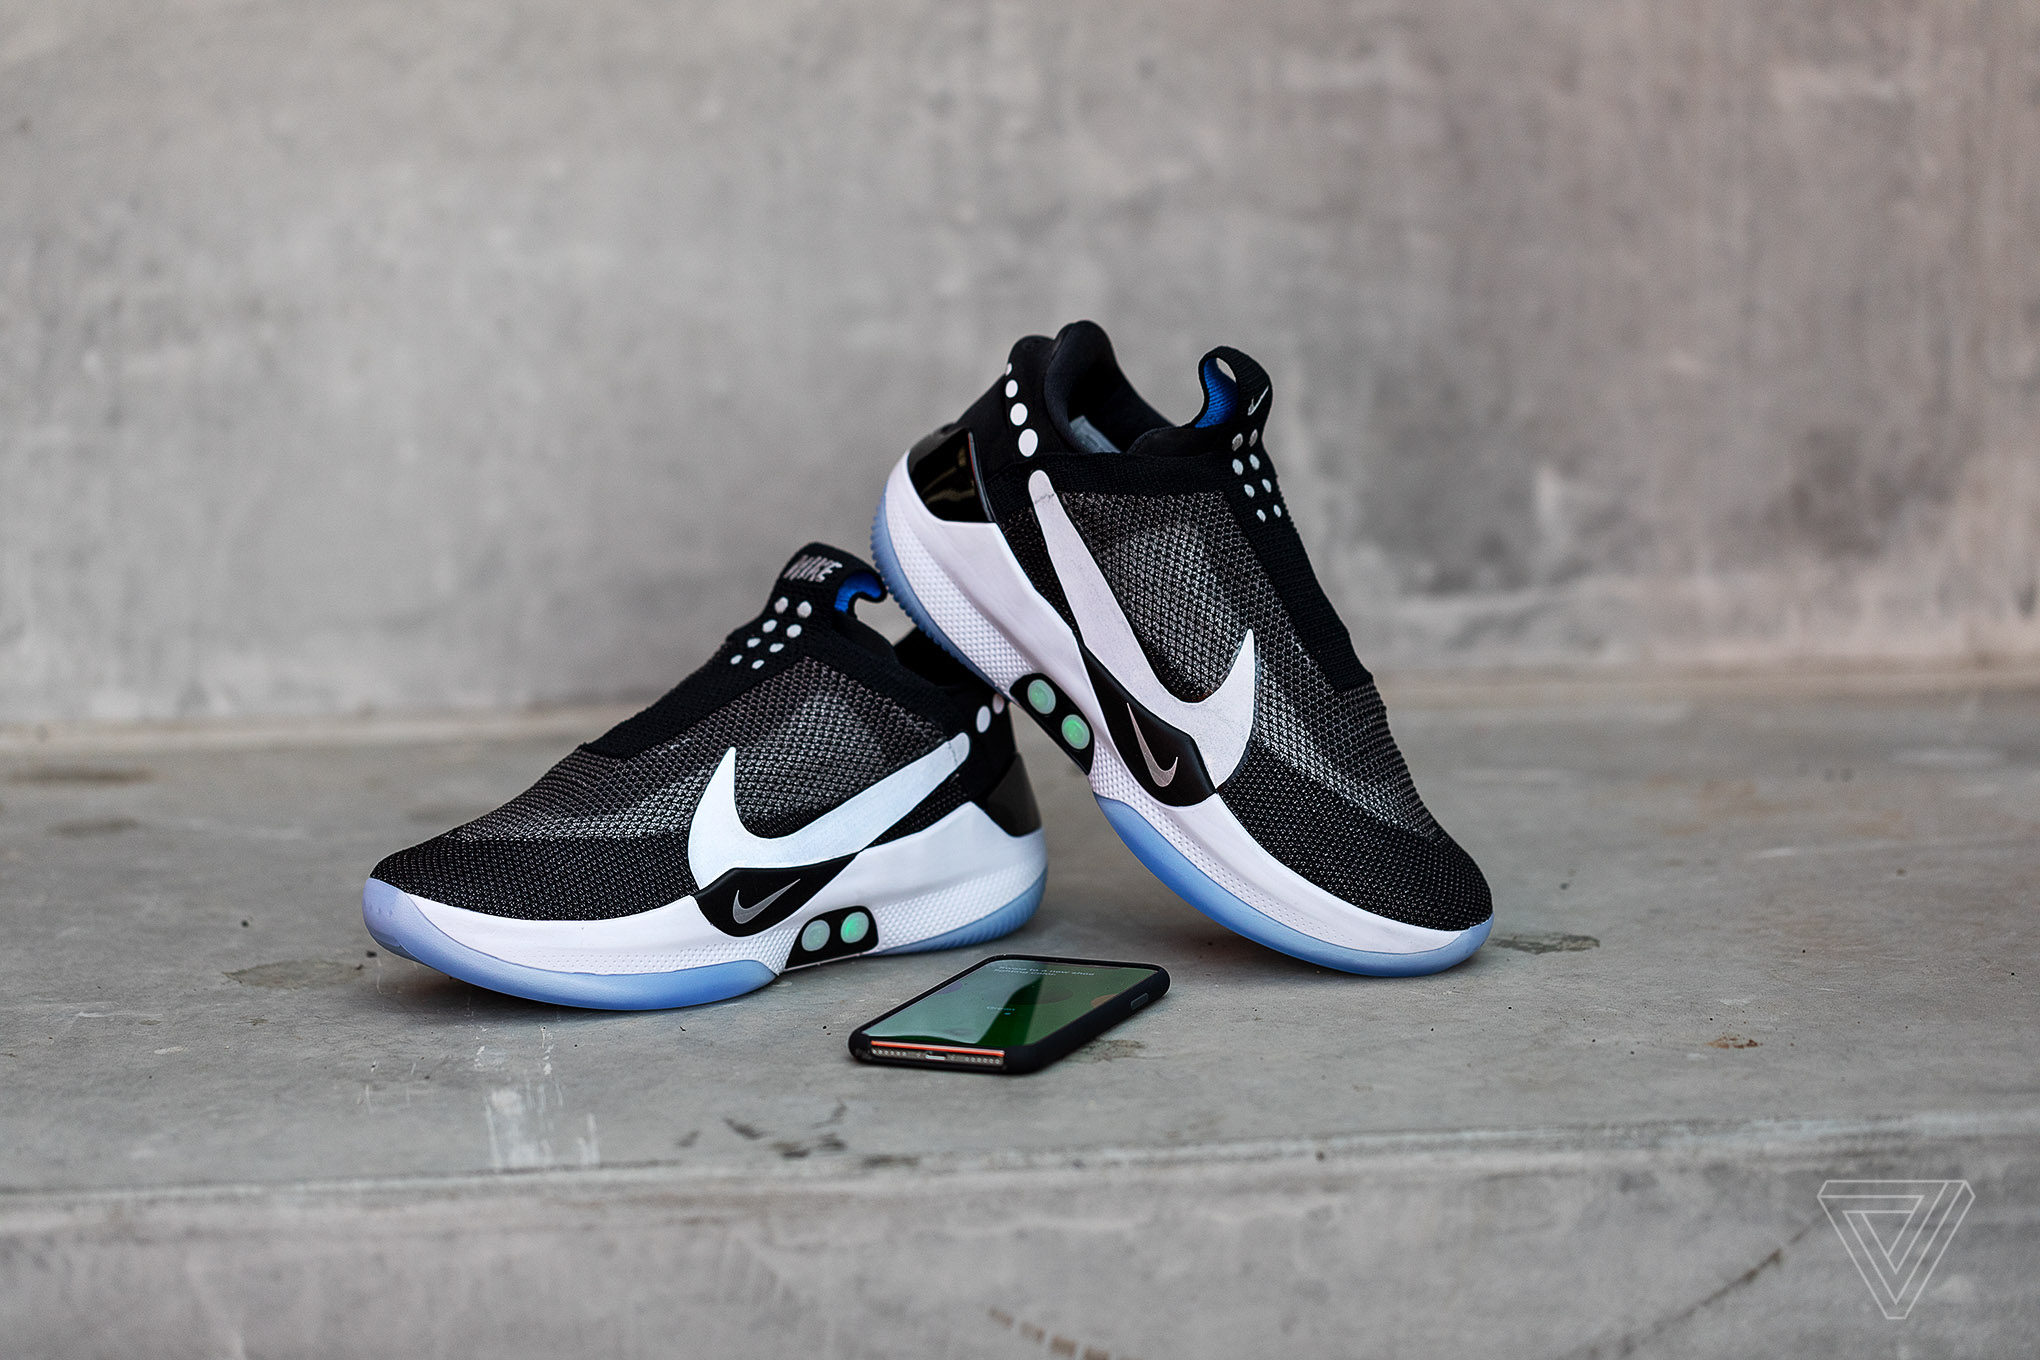 863c5c575cd0f Nike s Adapt BB self-lacing sneakers let you tie your shoes from an ...